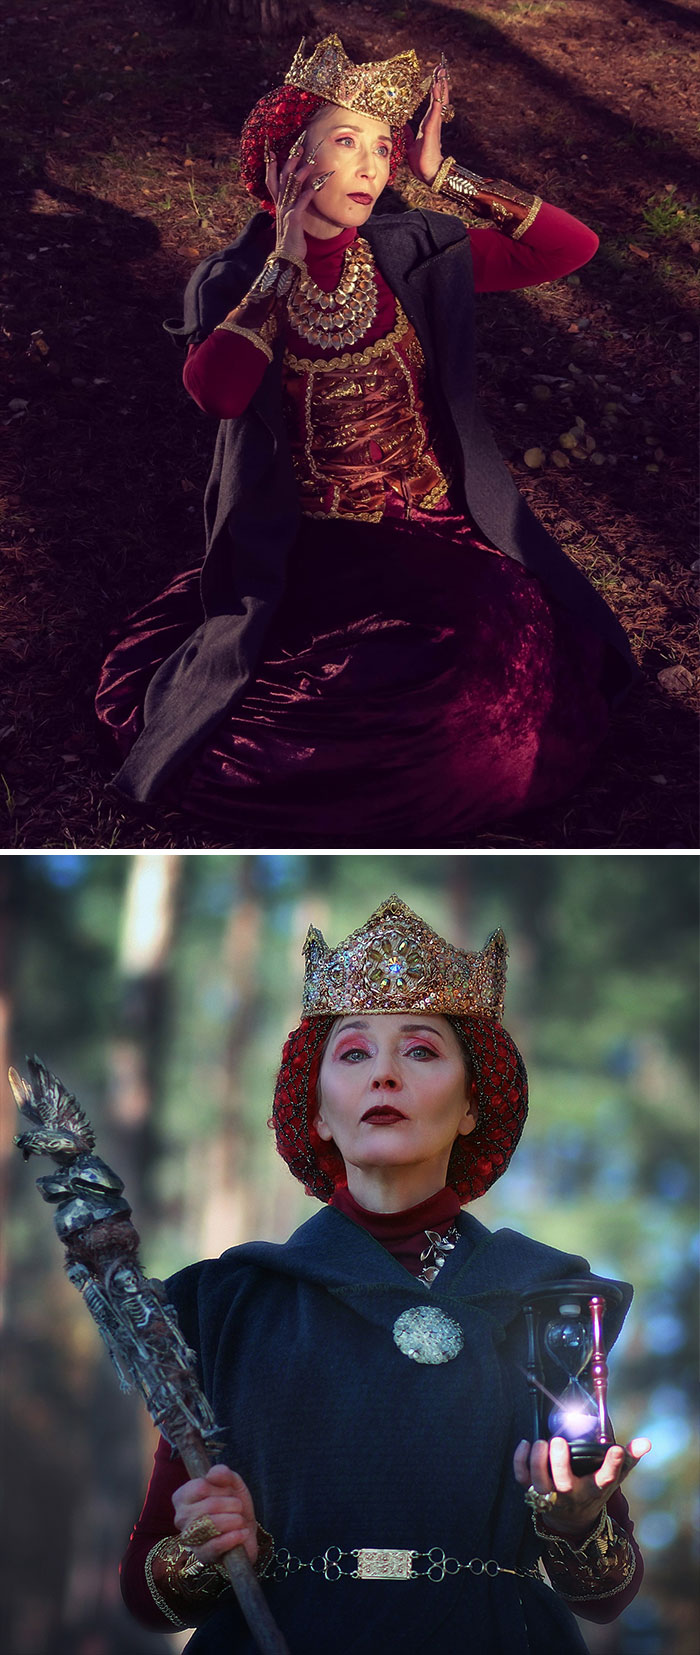 Russian Grandma Makes Amazing Cosplays With Materials Found In Flea Markets And Second Hand Stores